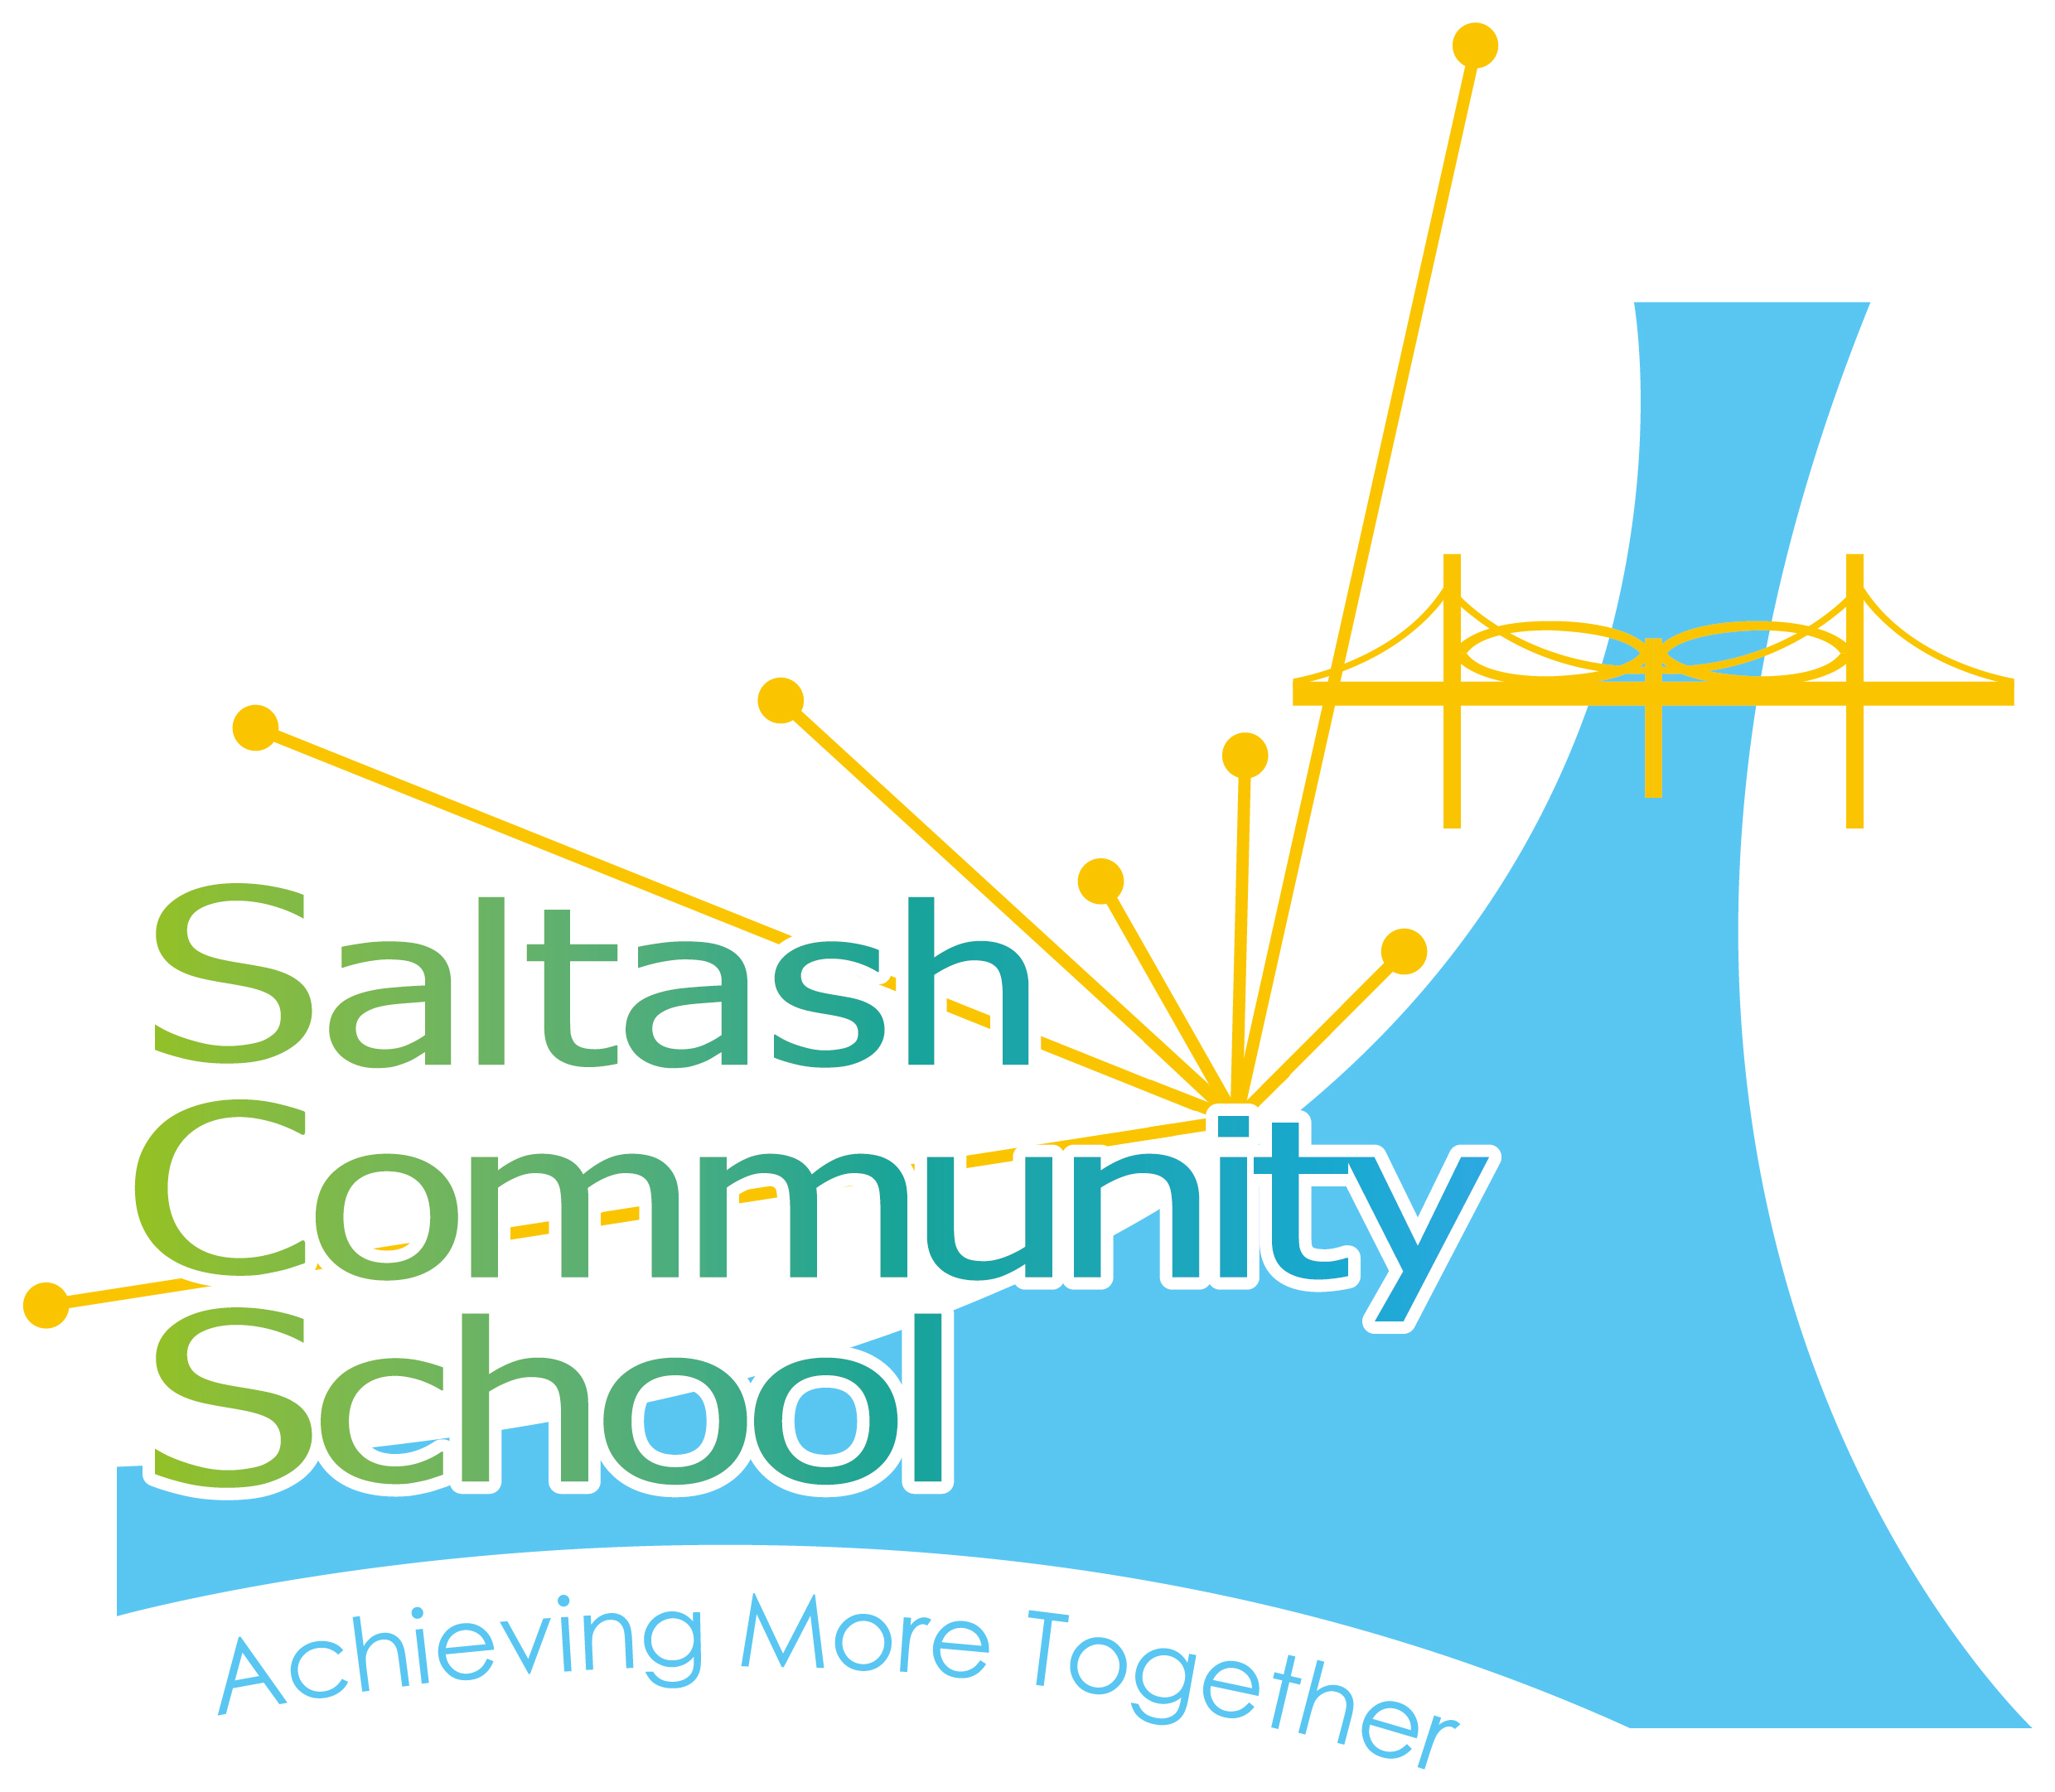 Saltash Community School